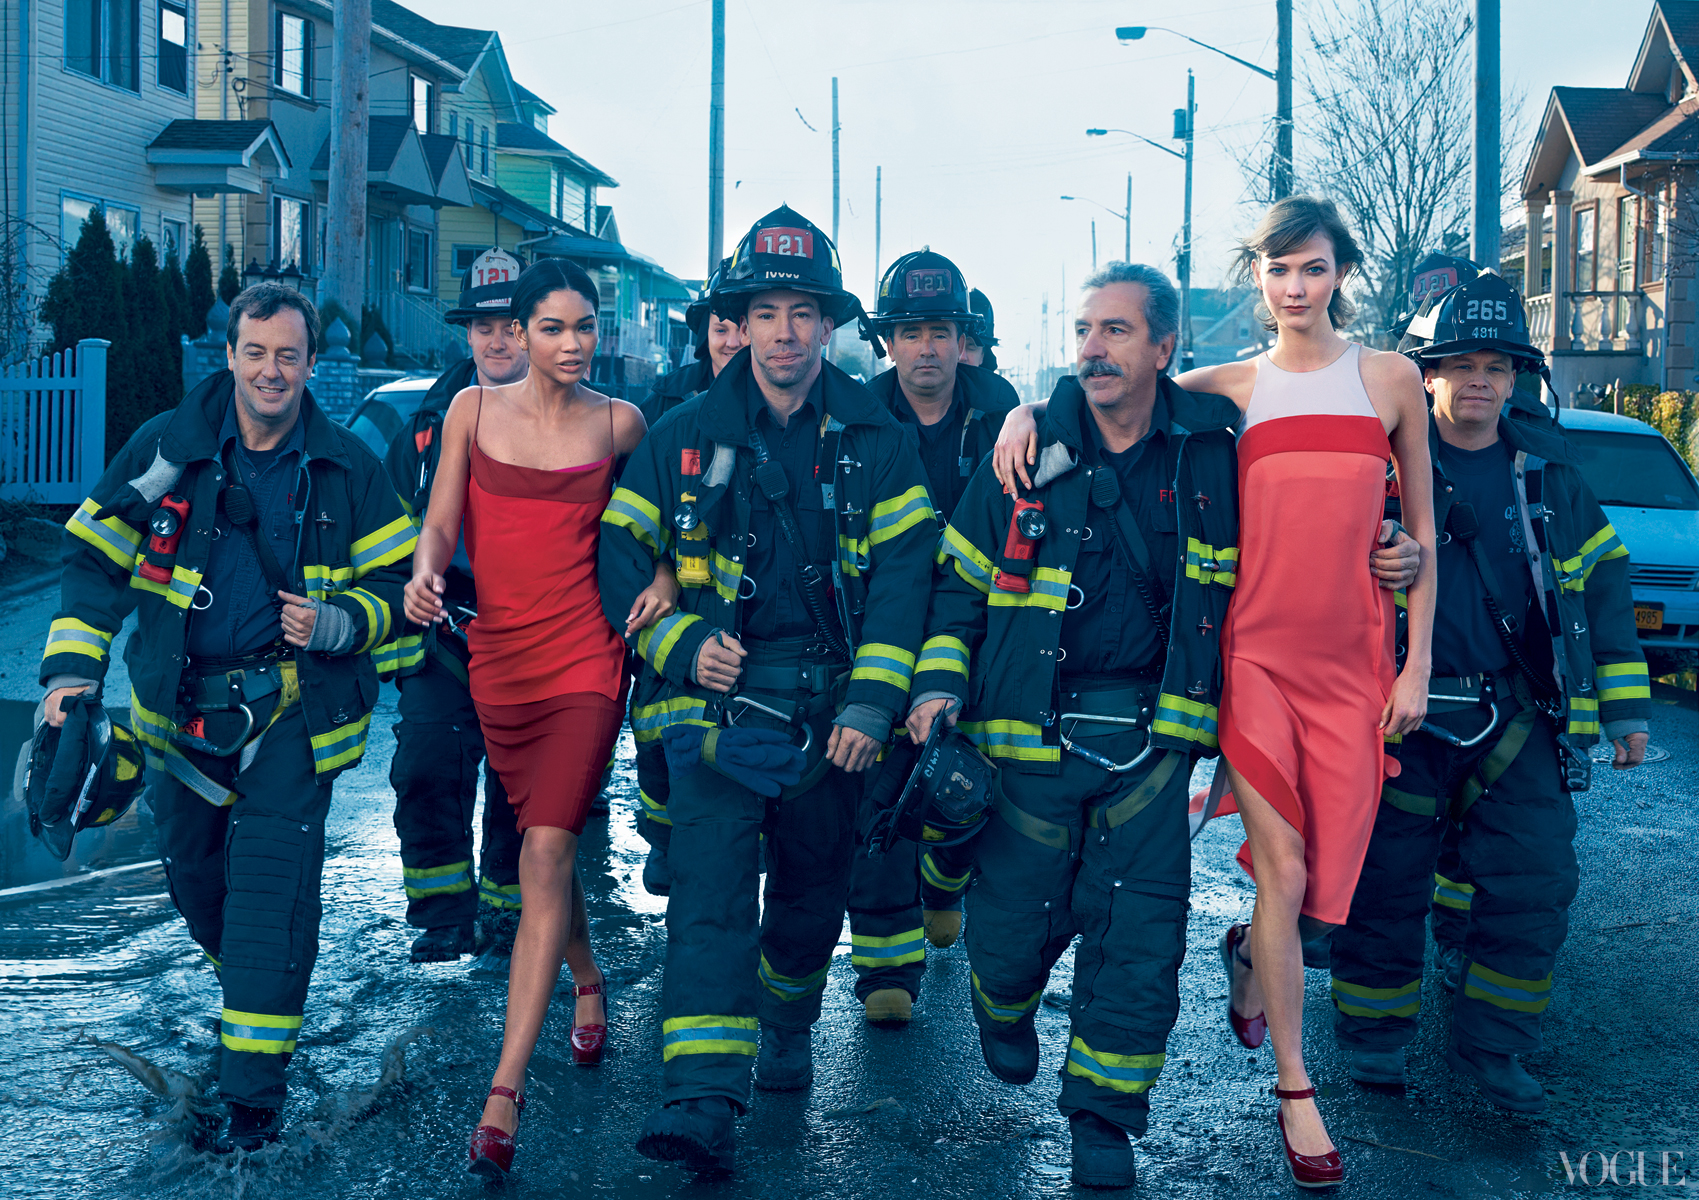 Annie Leibovitz, Hurricane Sandy photo shoot for Vogue, 2013